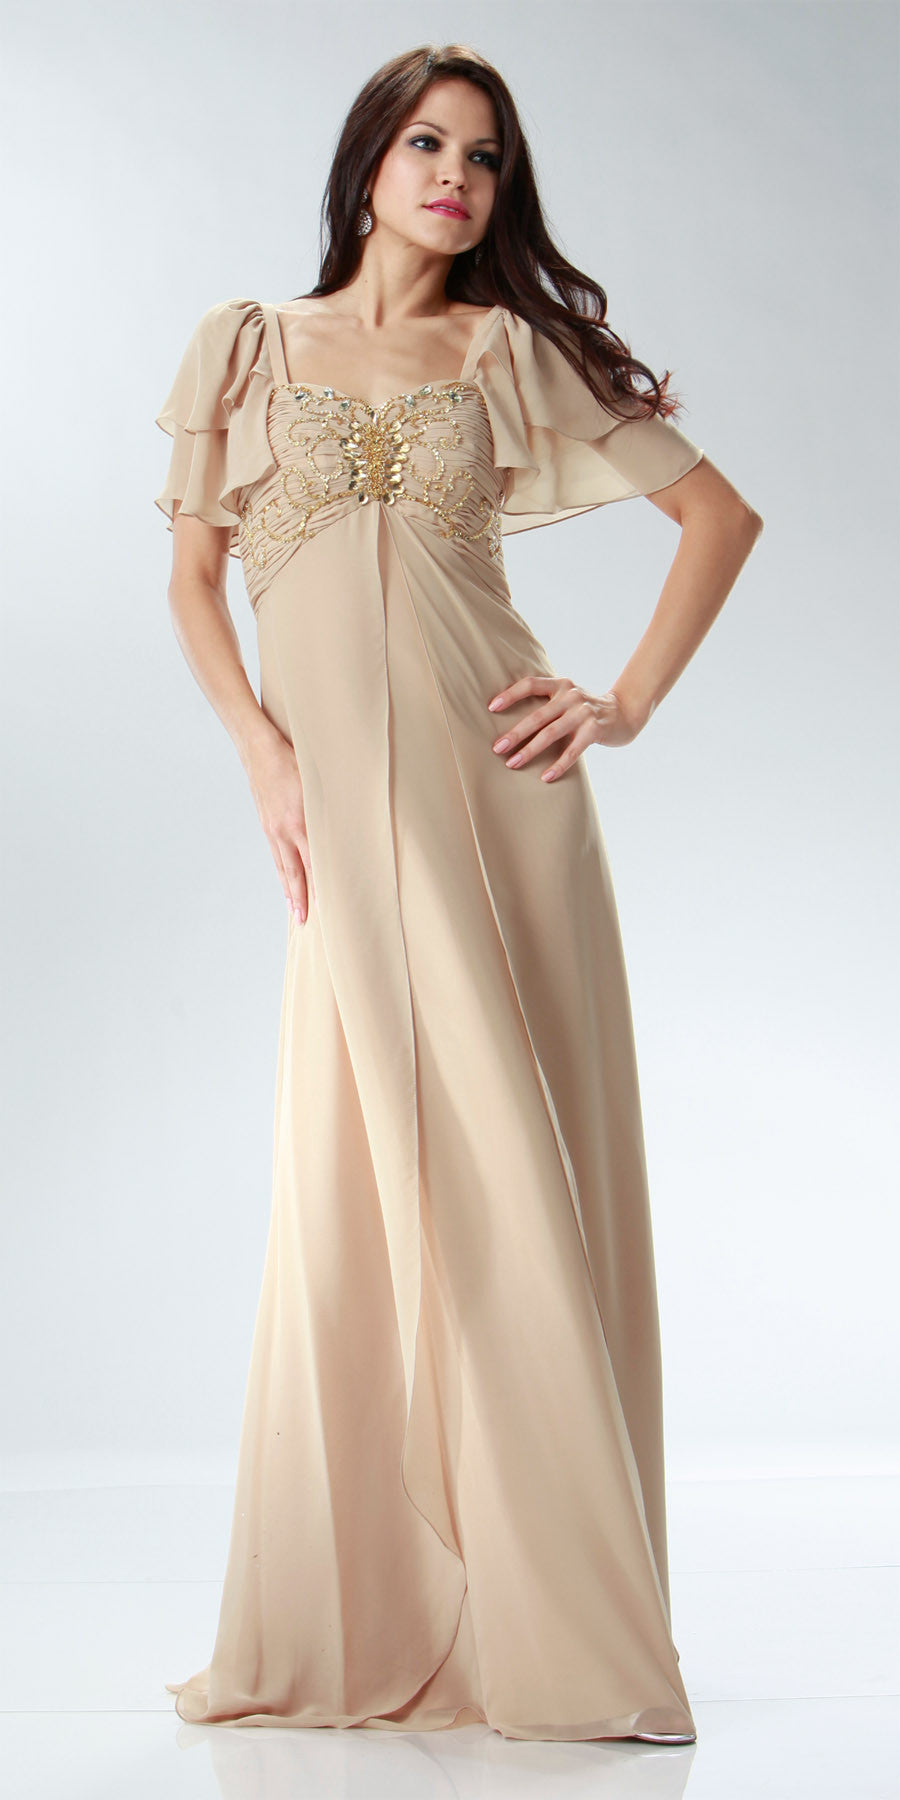 cc0362b77c ... Short Sleeve Champagne Chiffon Dress Sweetheart Neck Beaded Empire. Tap  to expand